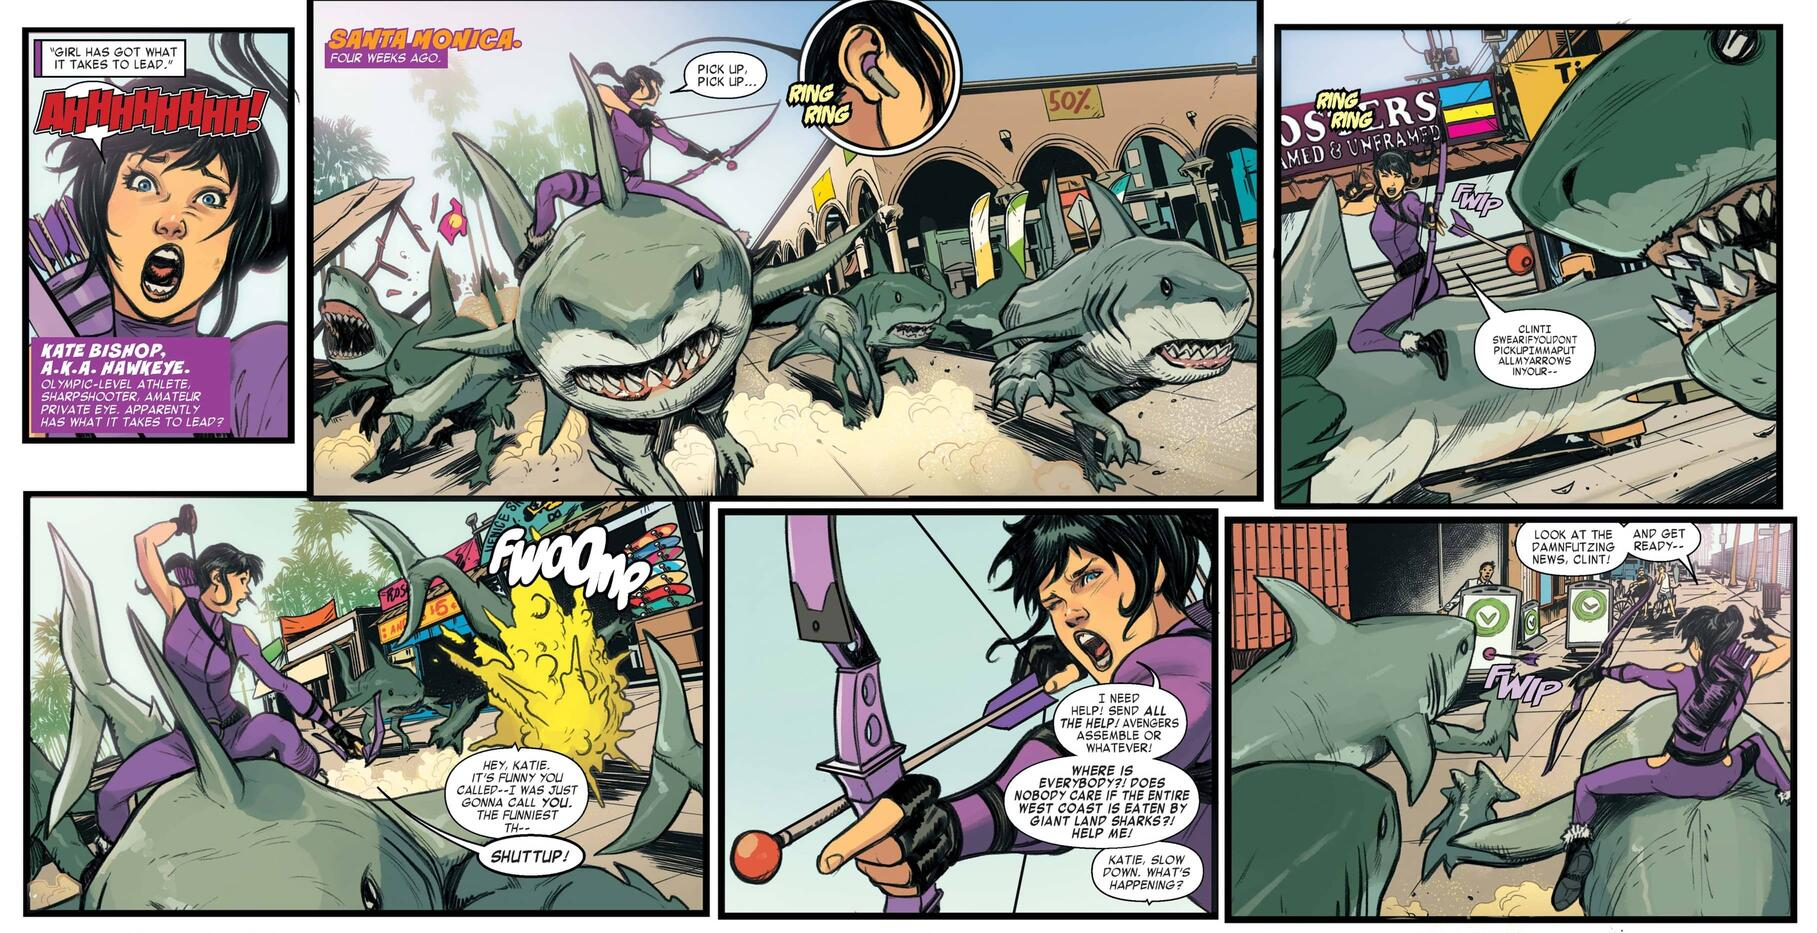 Kate versus land sharks in WEST COAST AVENGERS (2018) #1.